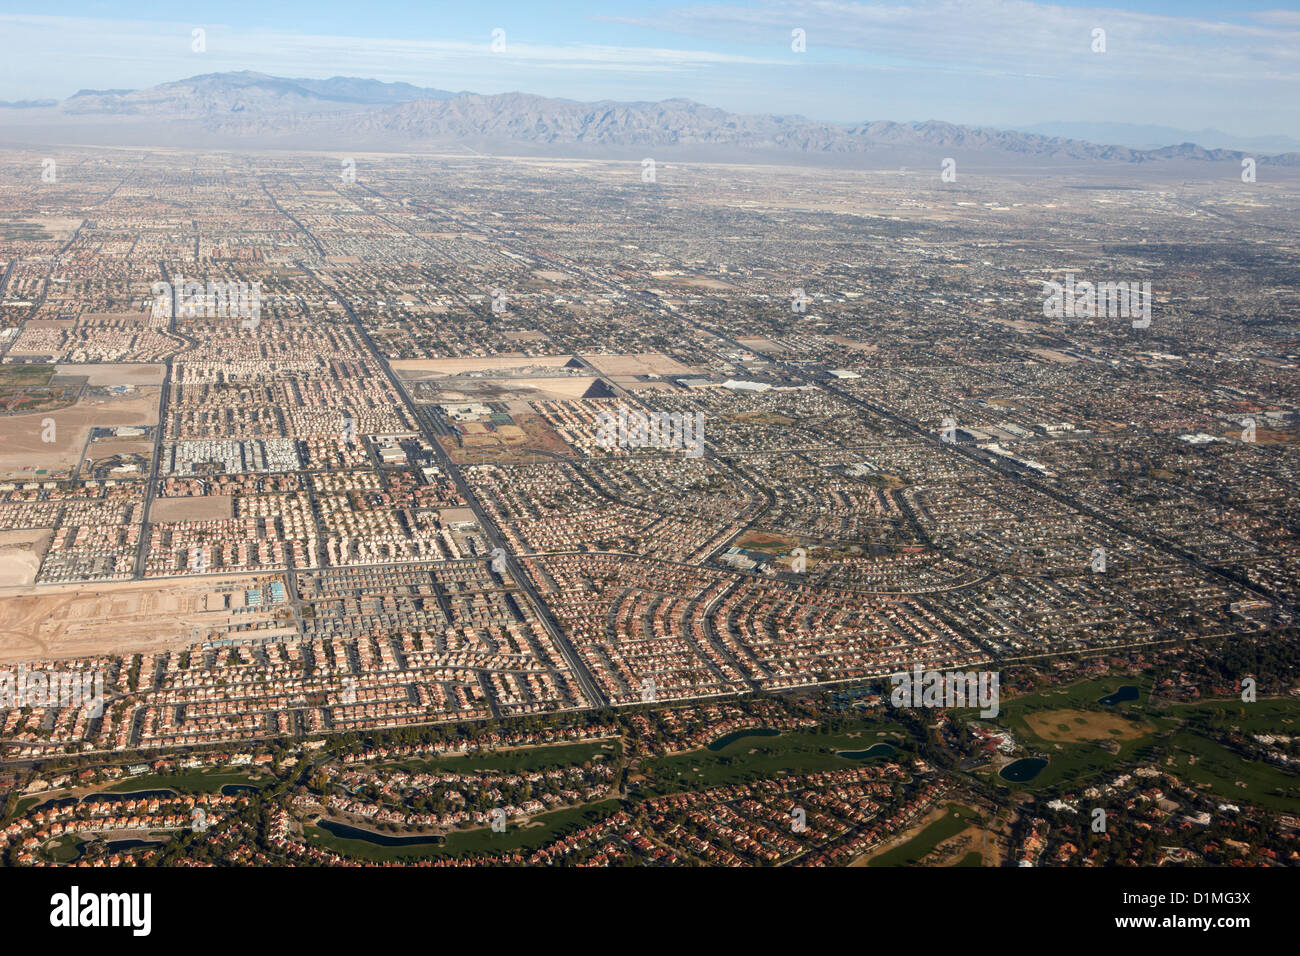 aerial view of Las Vegas urban sprawl Nevada USA - Stock Image